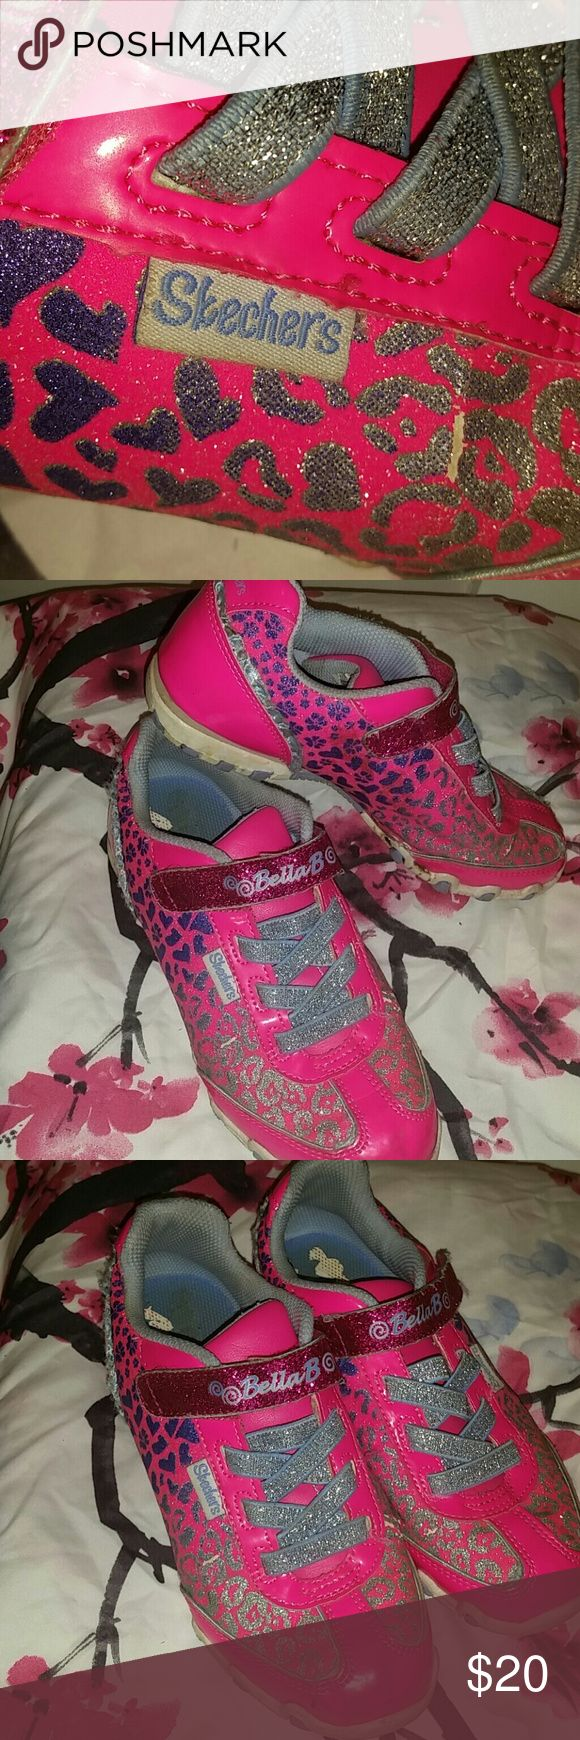 Skechers Ballerina tennis shoes Skechers Ballerina tennis shoes. Colors: Pink, Purple and Silver .Used , No pet, No Smoking Home. Skechers Shoes Sneakers